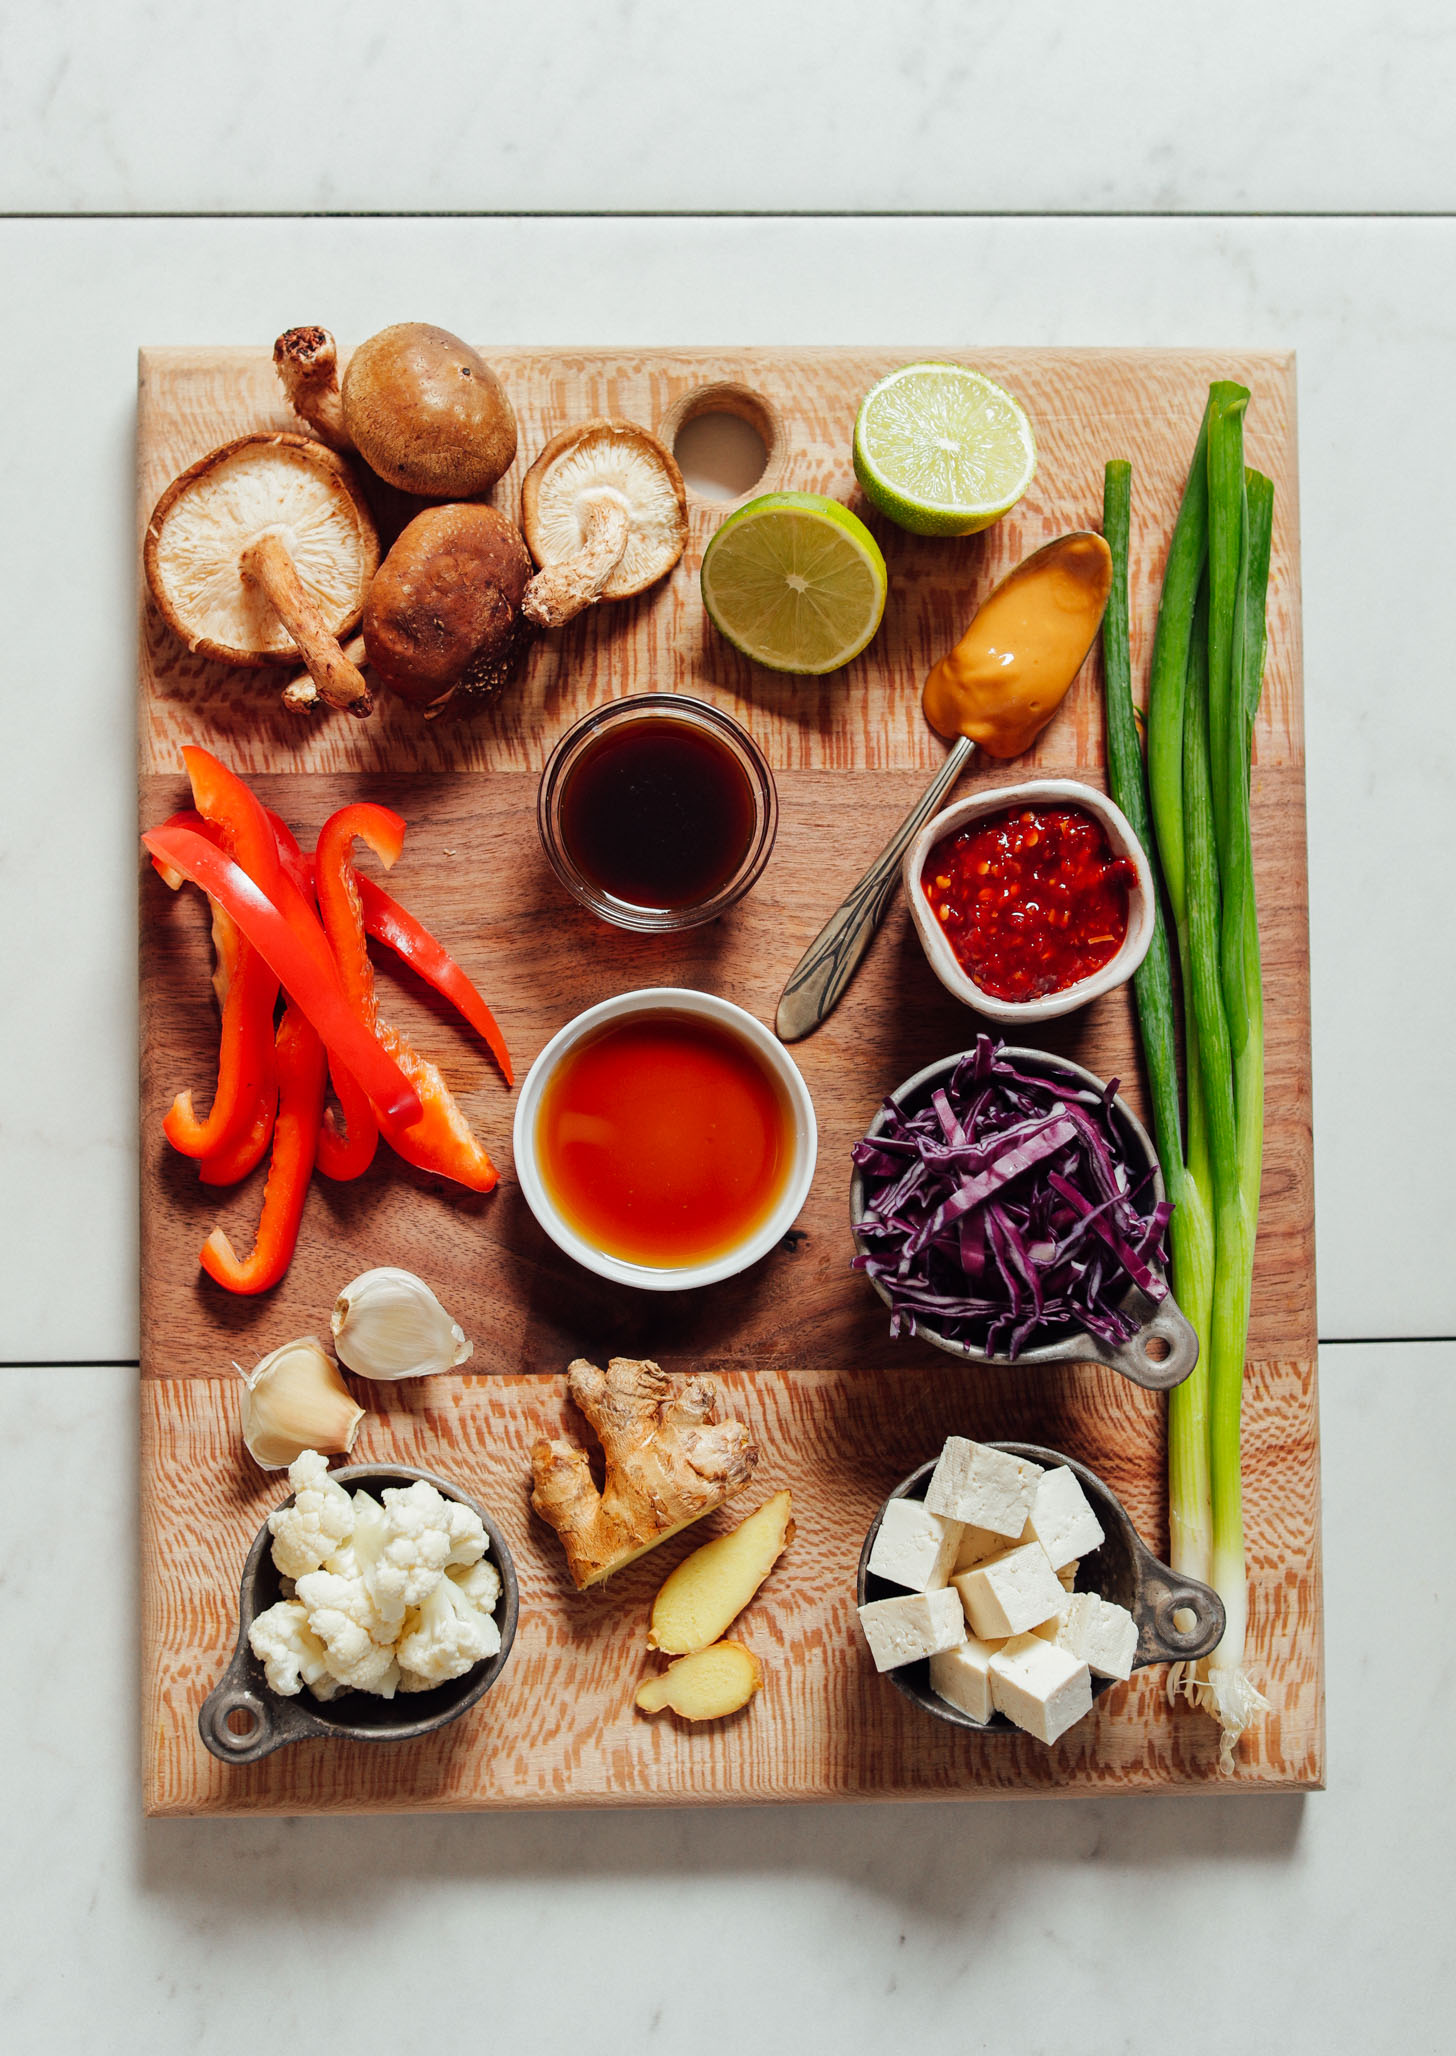 Wood cutting board with ingredients for making our 20-Minute Tofu Stir Fry recipe